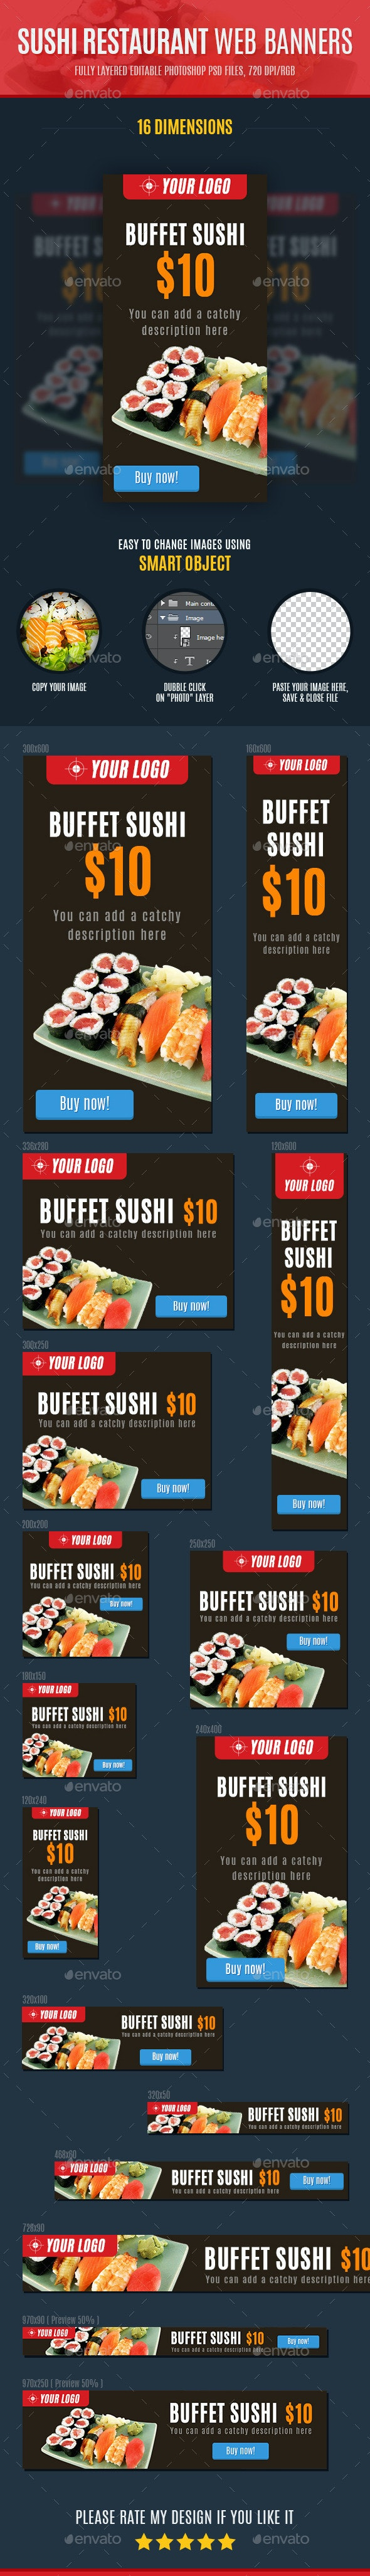 Sushi Restaurant Web Banners - Banners & Ads Web Elements